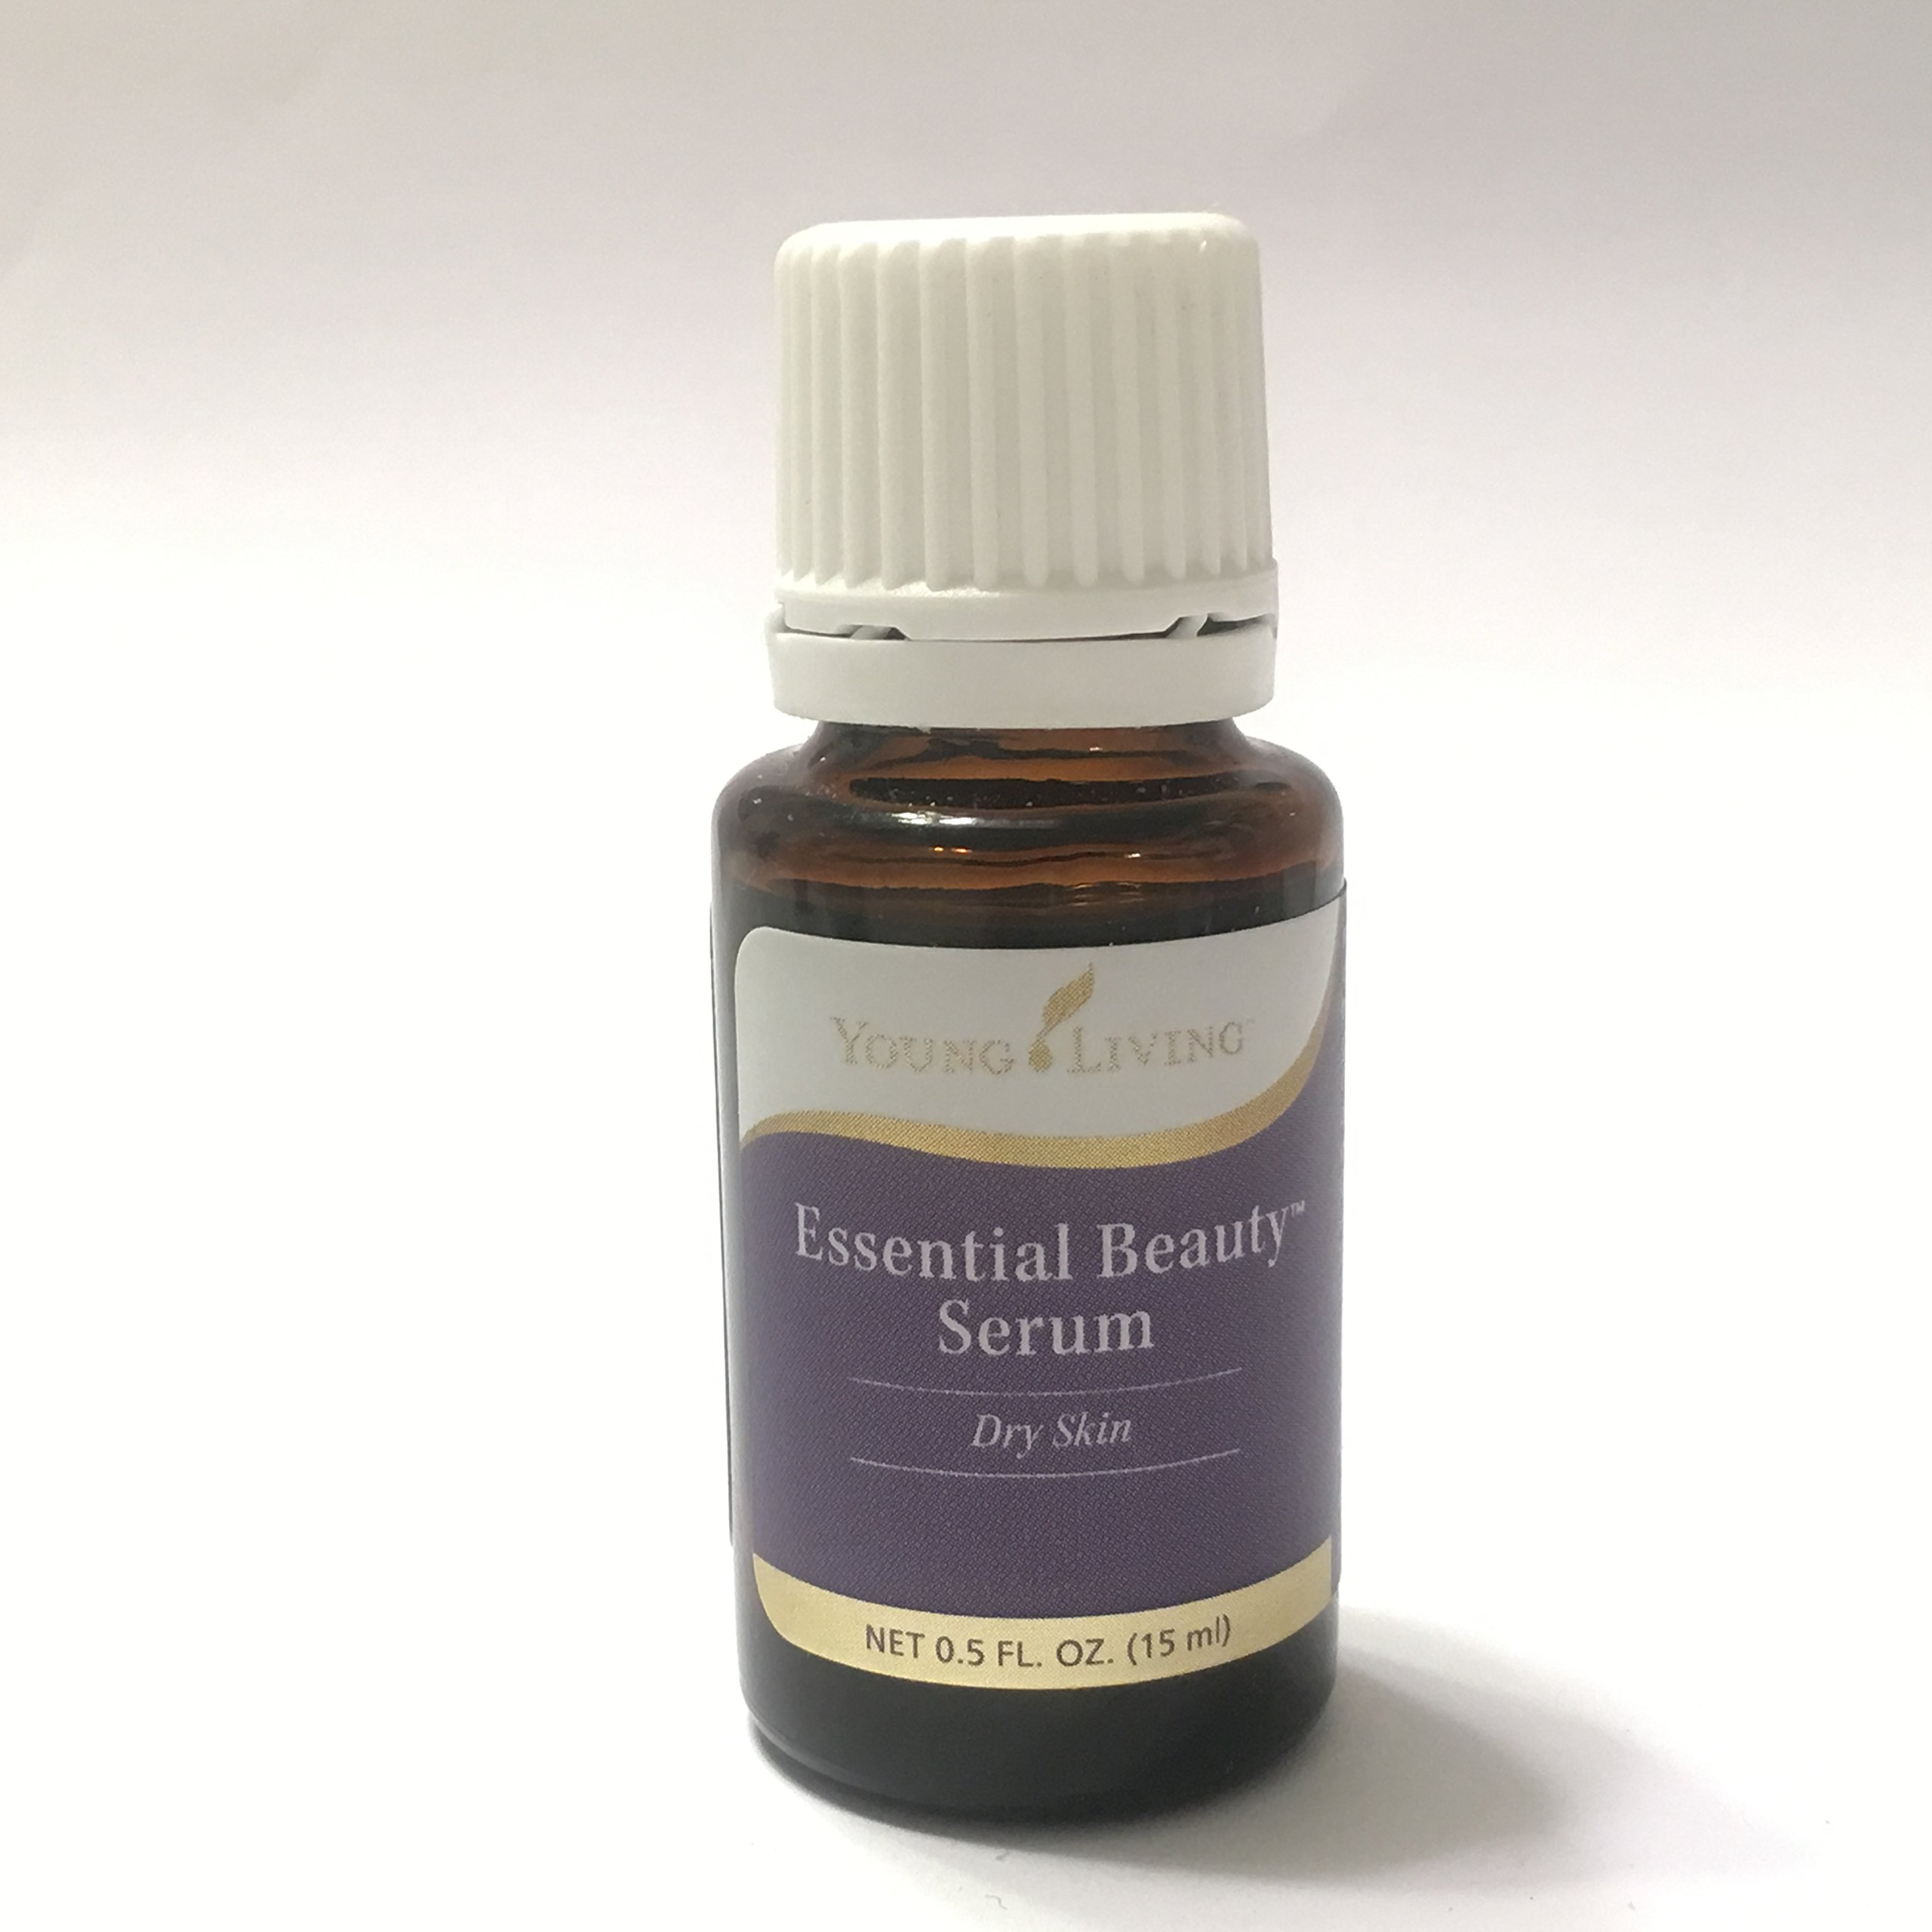 Essential Beauty Serum (Dry) - 15 ml by Young Living Essential Oils